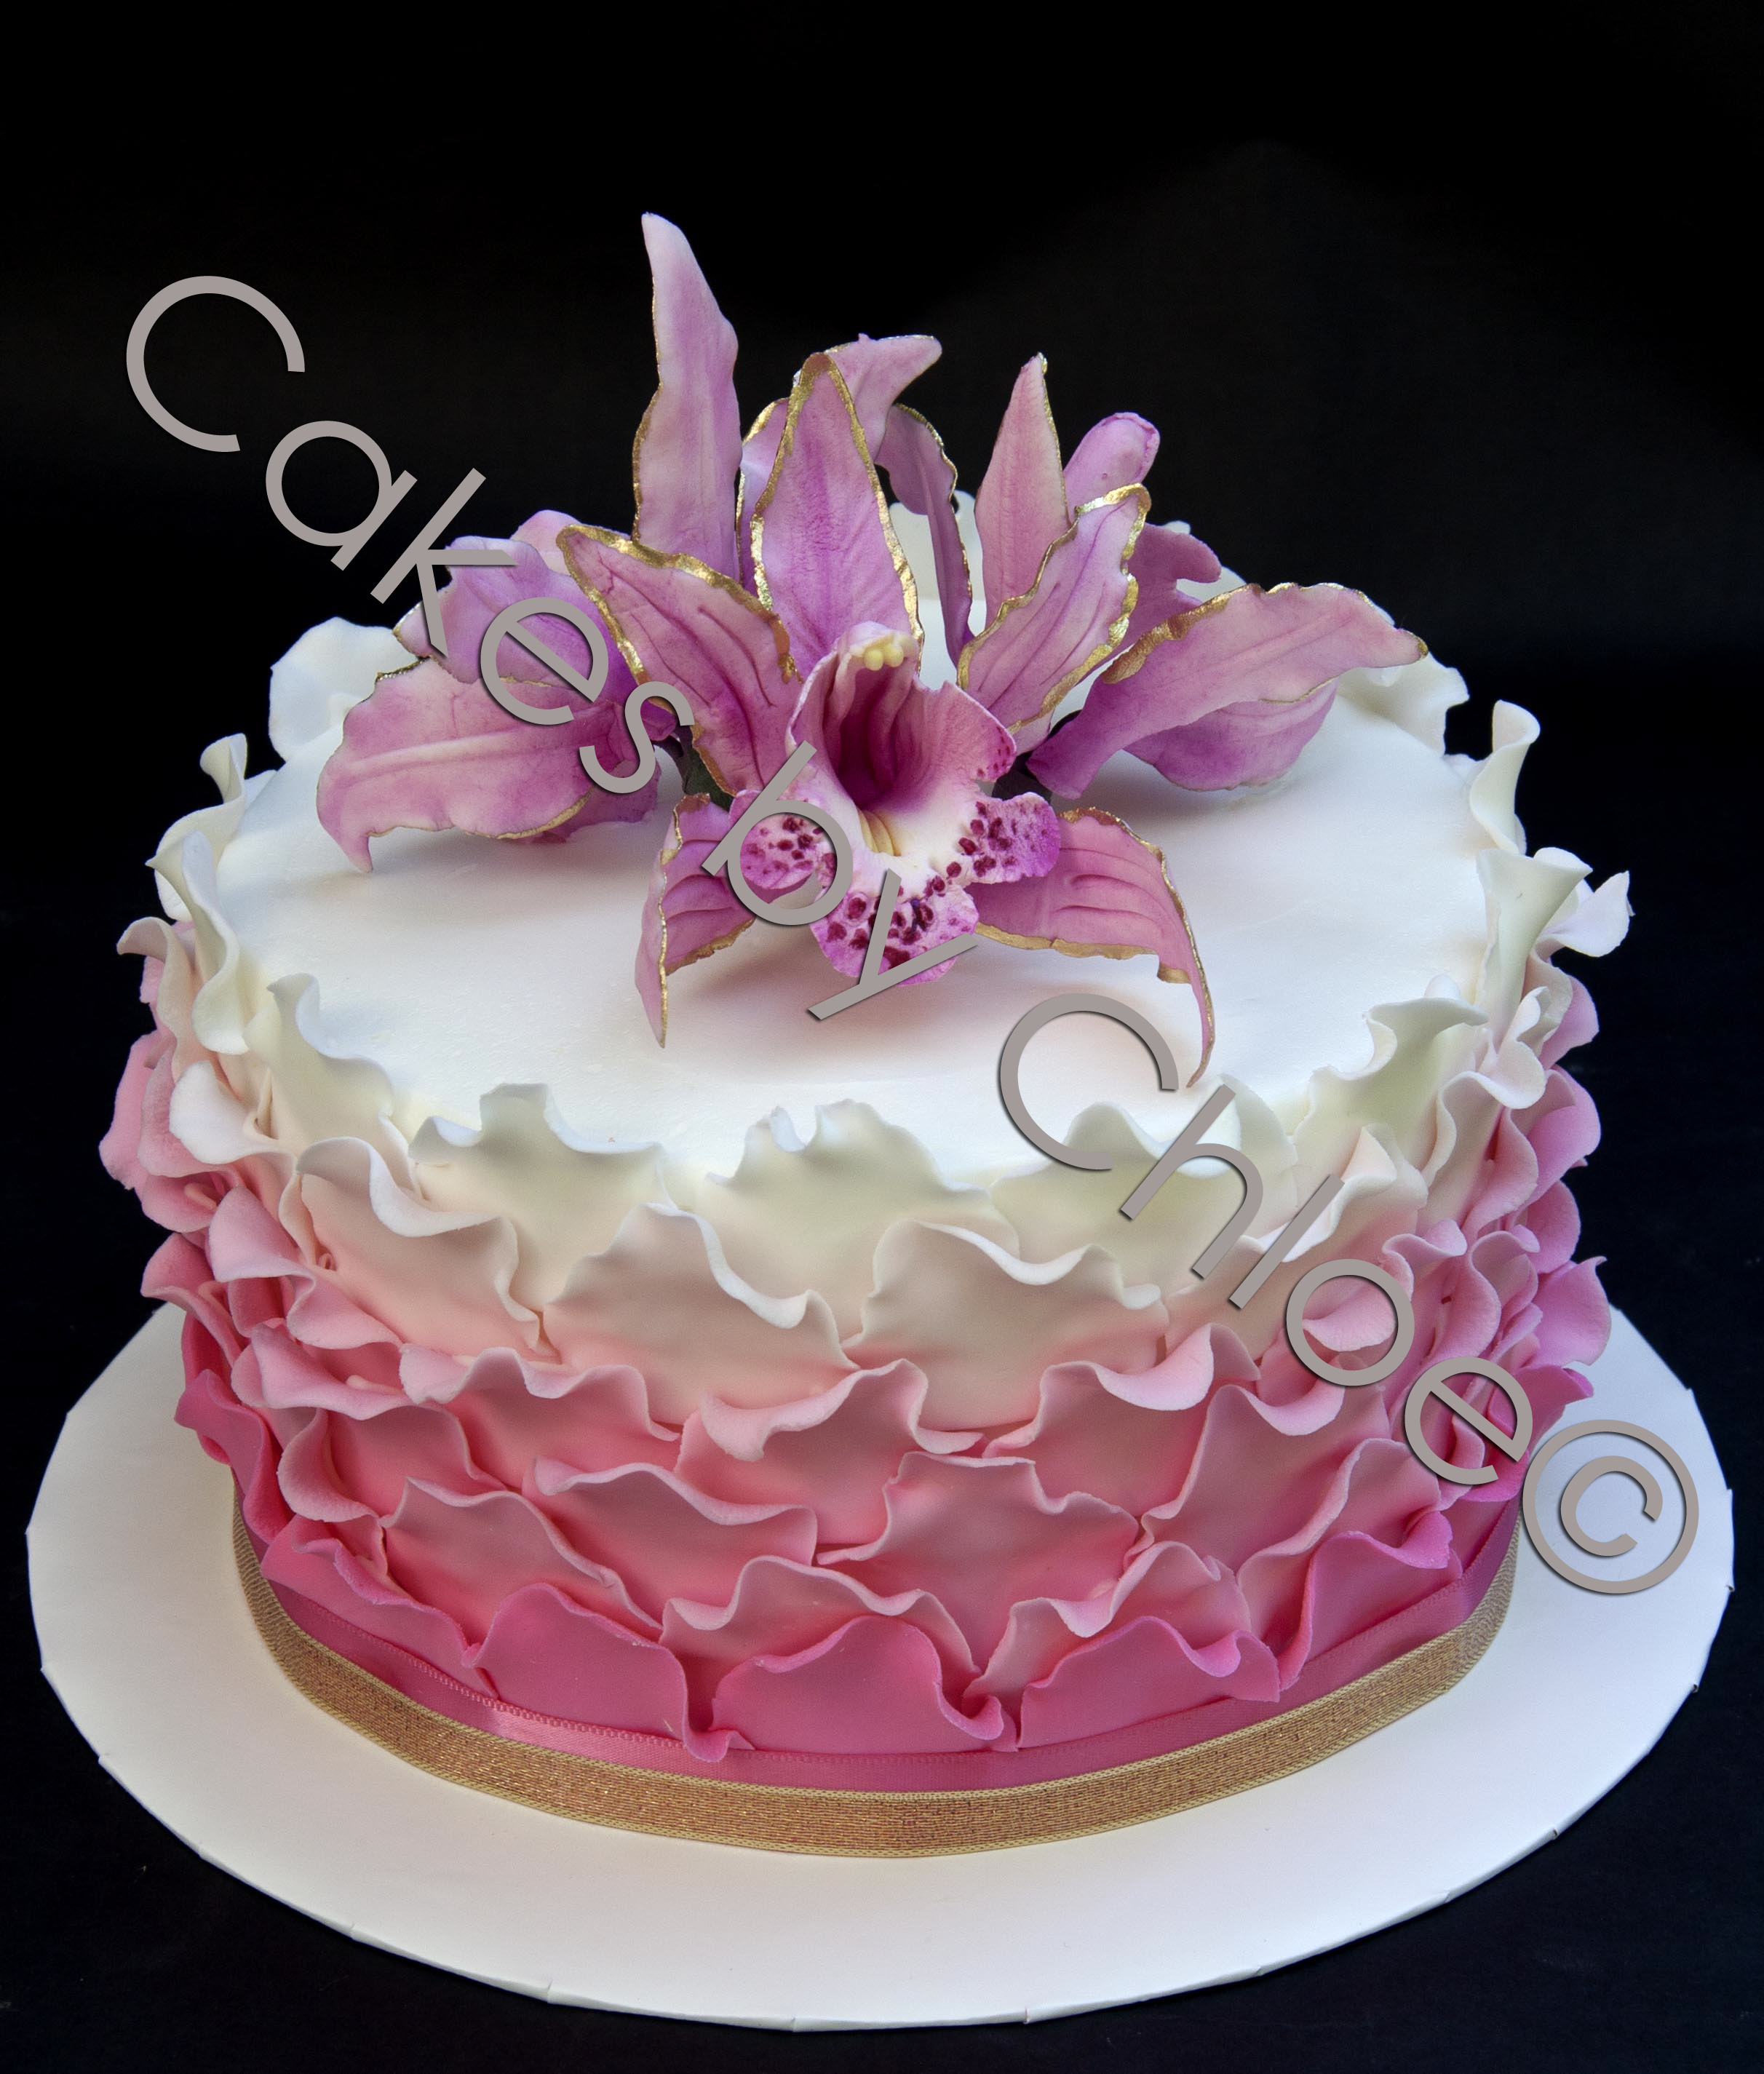 Special Occasion And Wedding Cakes: Special Occasion